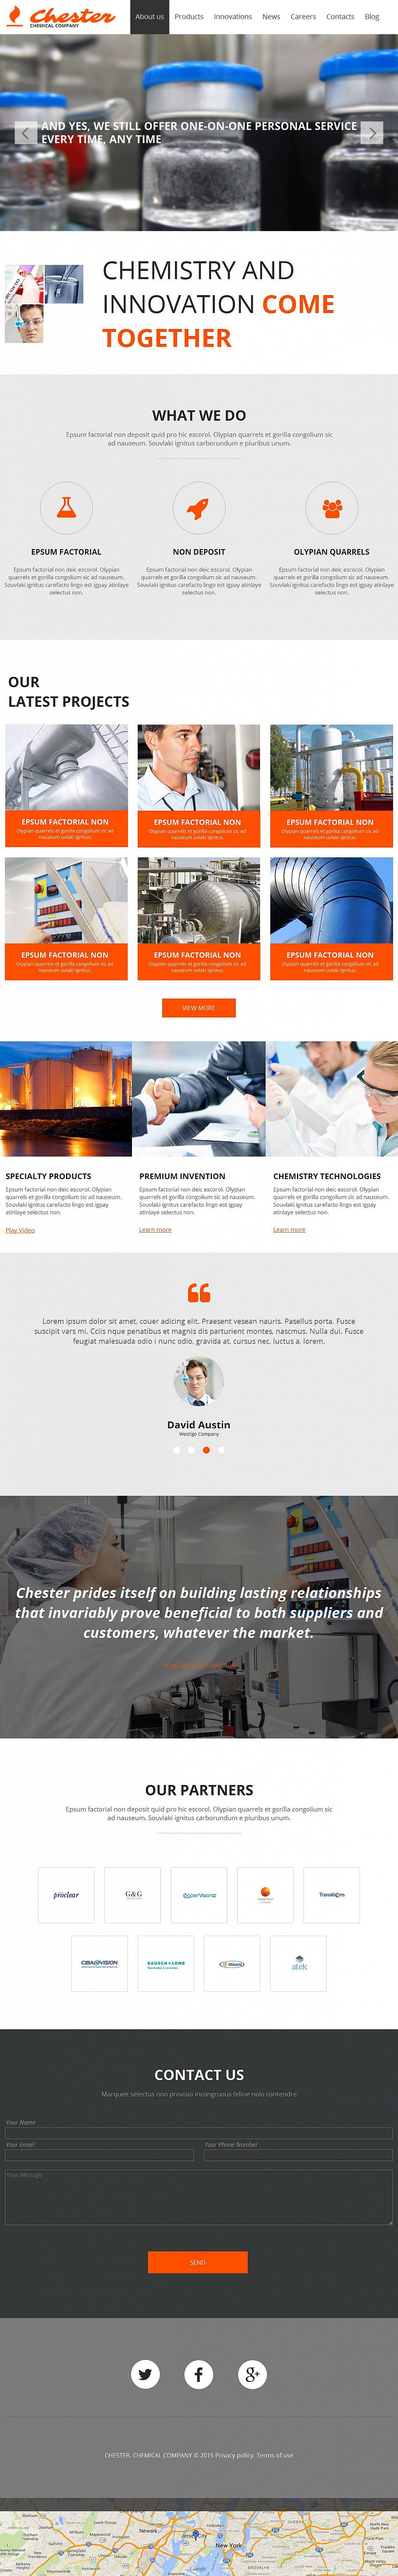 Chemical Web Template in Flat Style - image